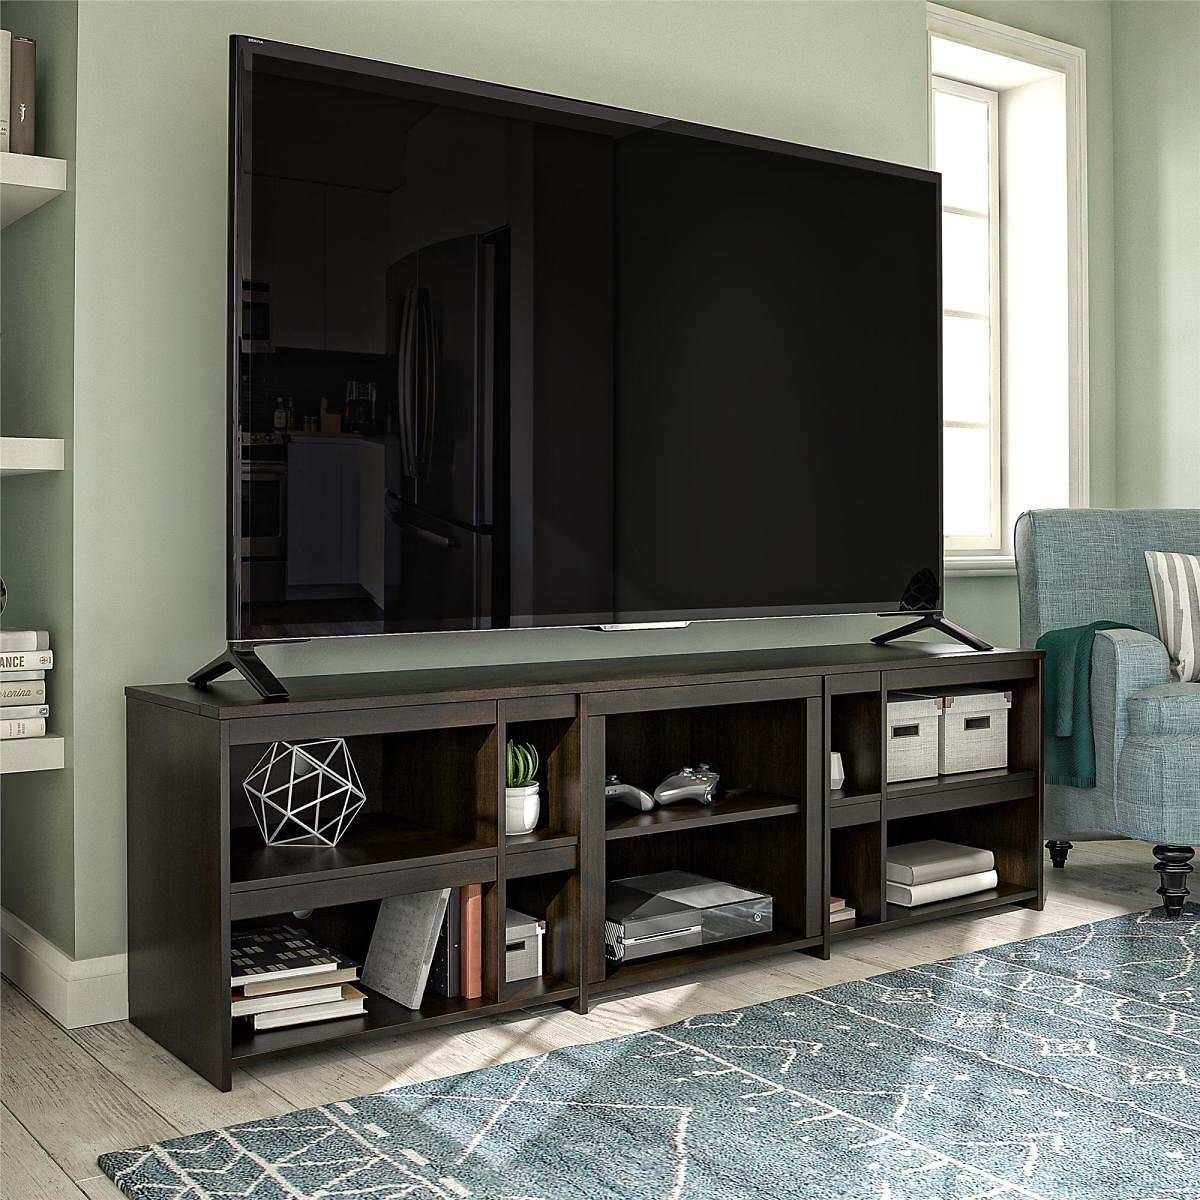 Ameriwood Home Rhea TV Stand for TVs Up to 70